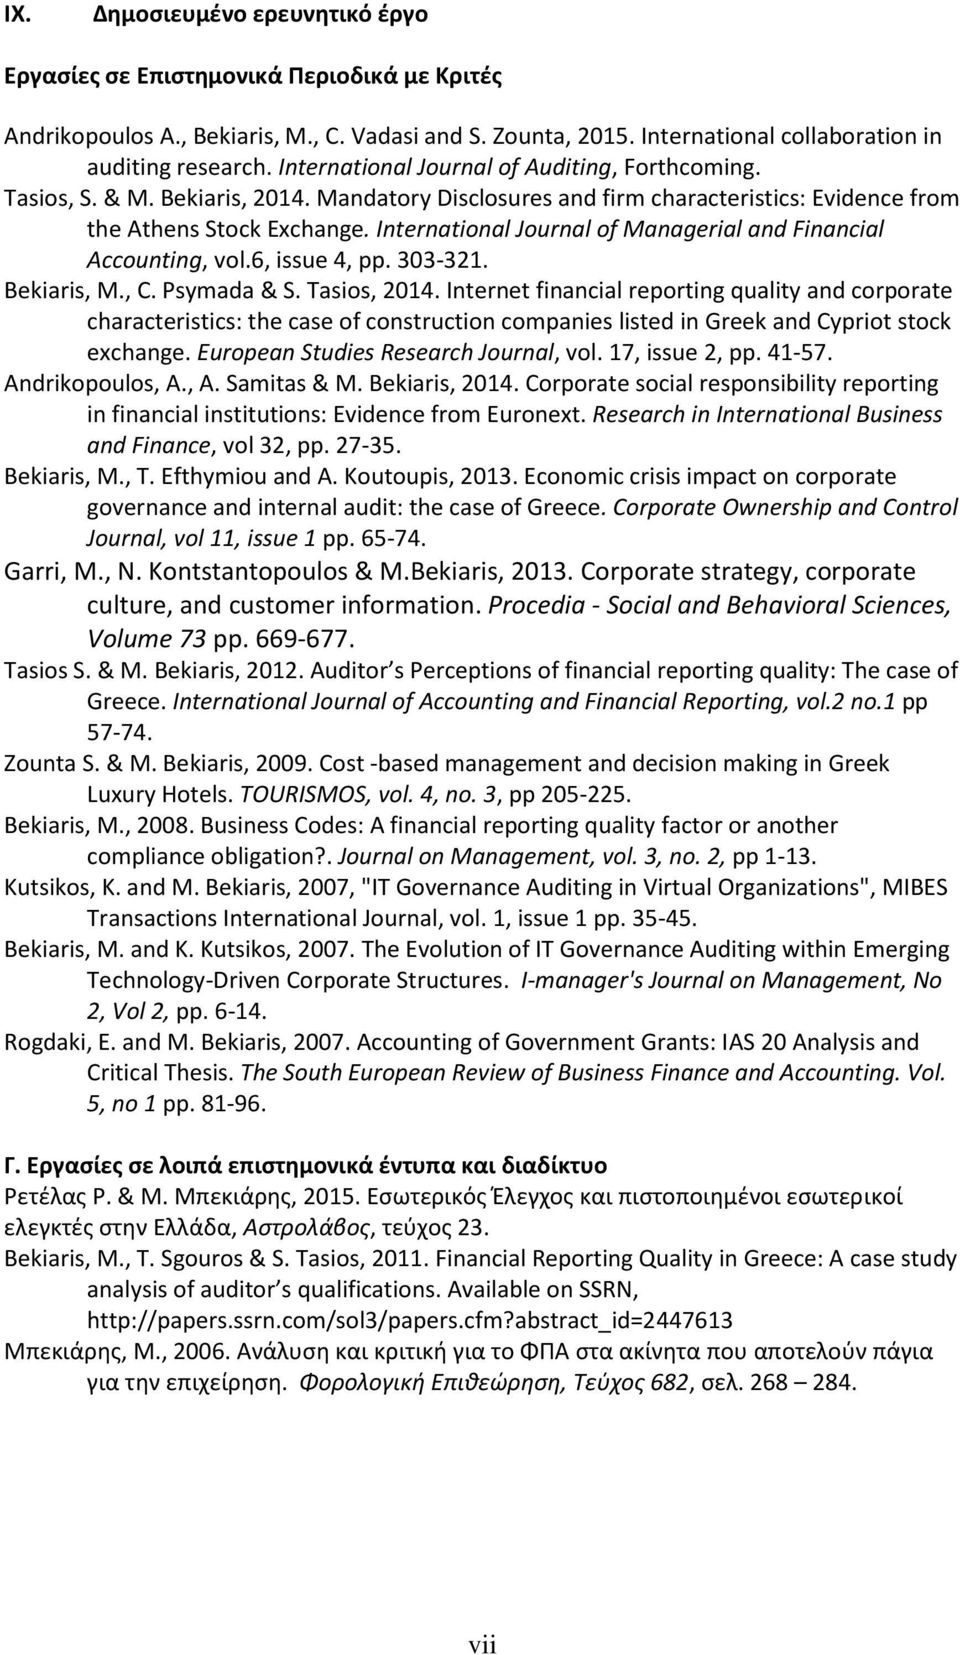 International Journal of Managerial and Financial Accounting, vol.6, issue 4, pp. 303-321. Bekiaris, M., C. Psymada & S. Tasios, 2014.